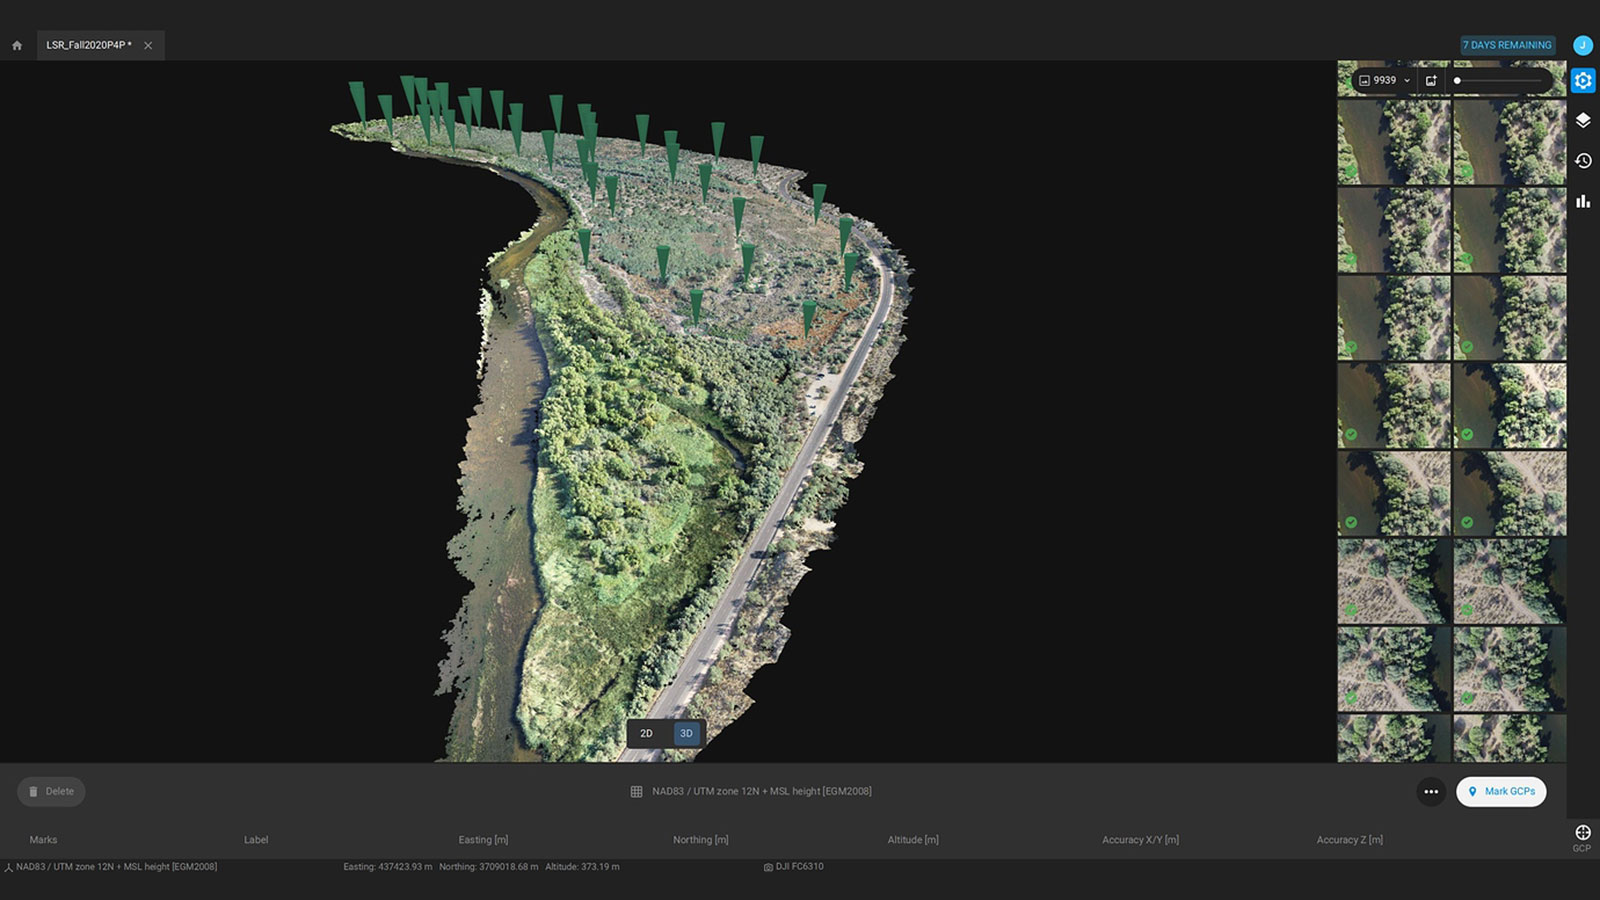 Pix4Dmatic interface with the corridor map of the river channel